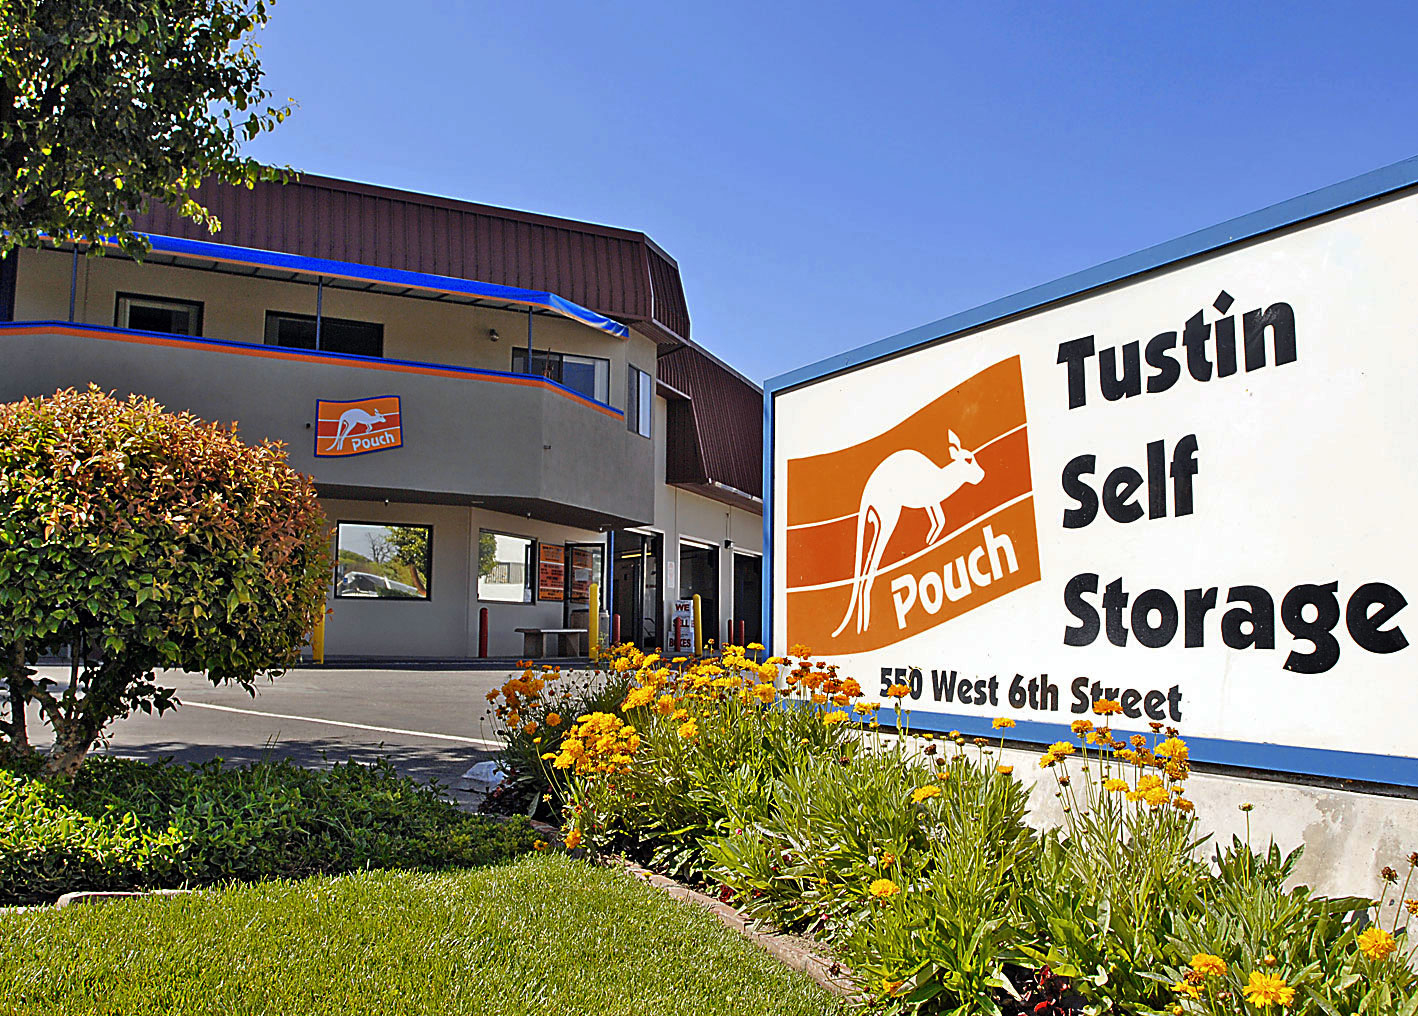 Tustin Self Storage image 4